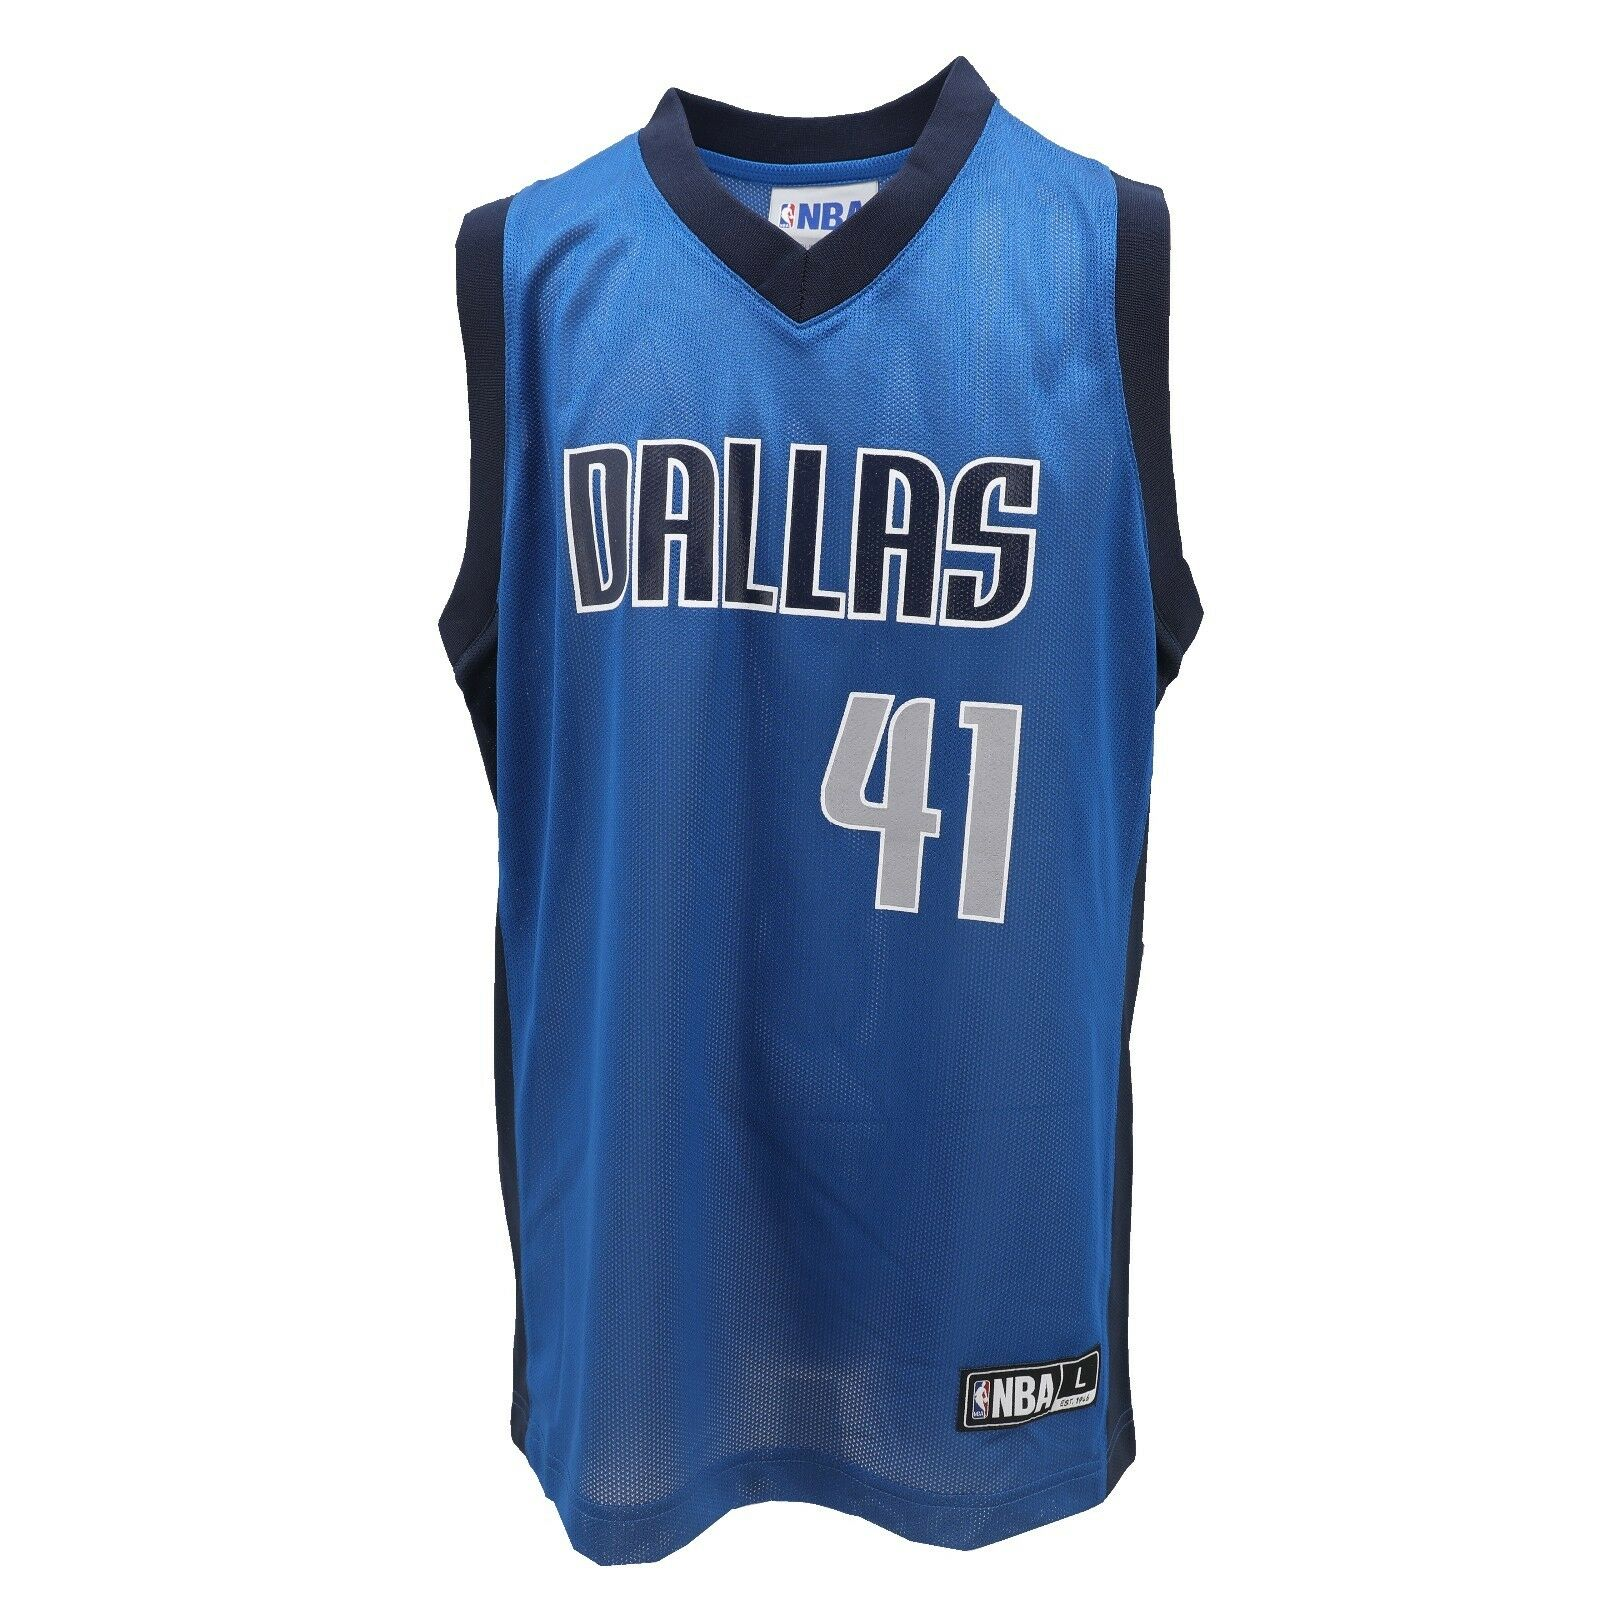 9d21f89e5 Dallas Mavericks NBA Official Kids Youth Size Dirk Nowitzki Jersey New with  Tags